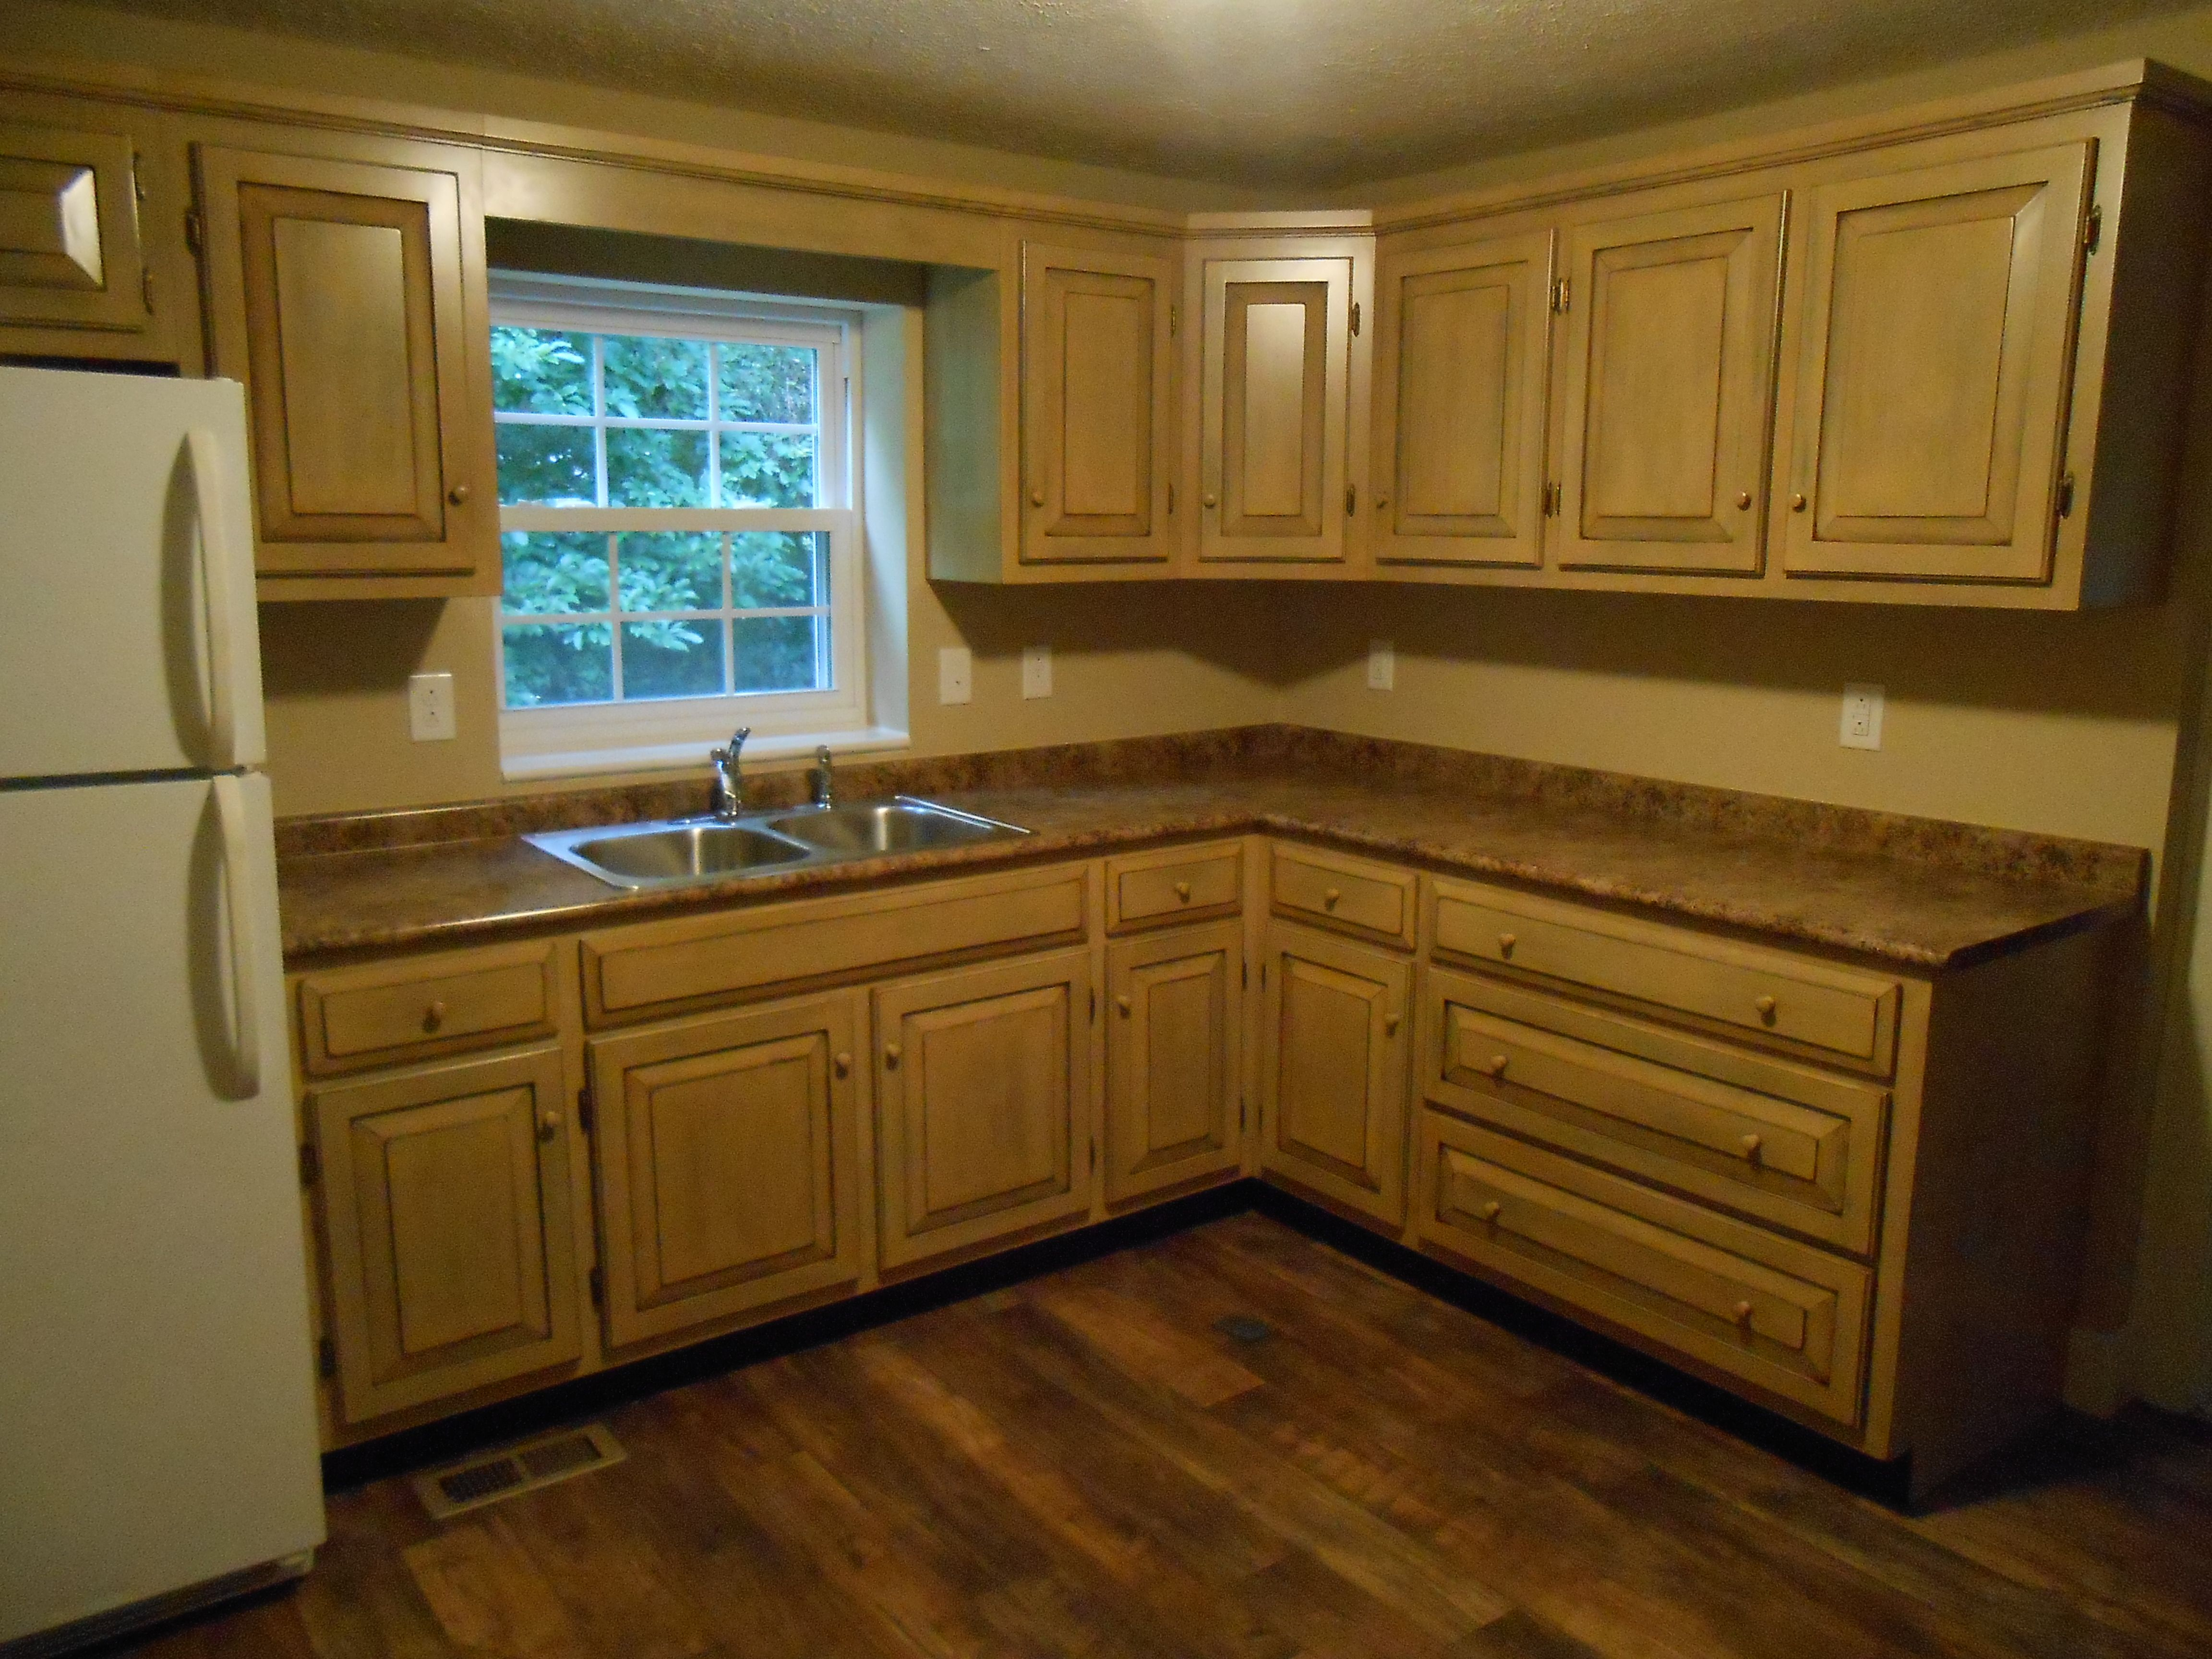 Kitchen Cabinets handcrafted by W. Harris and Son from The ...